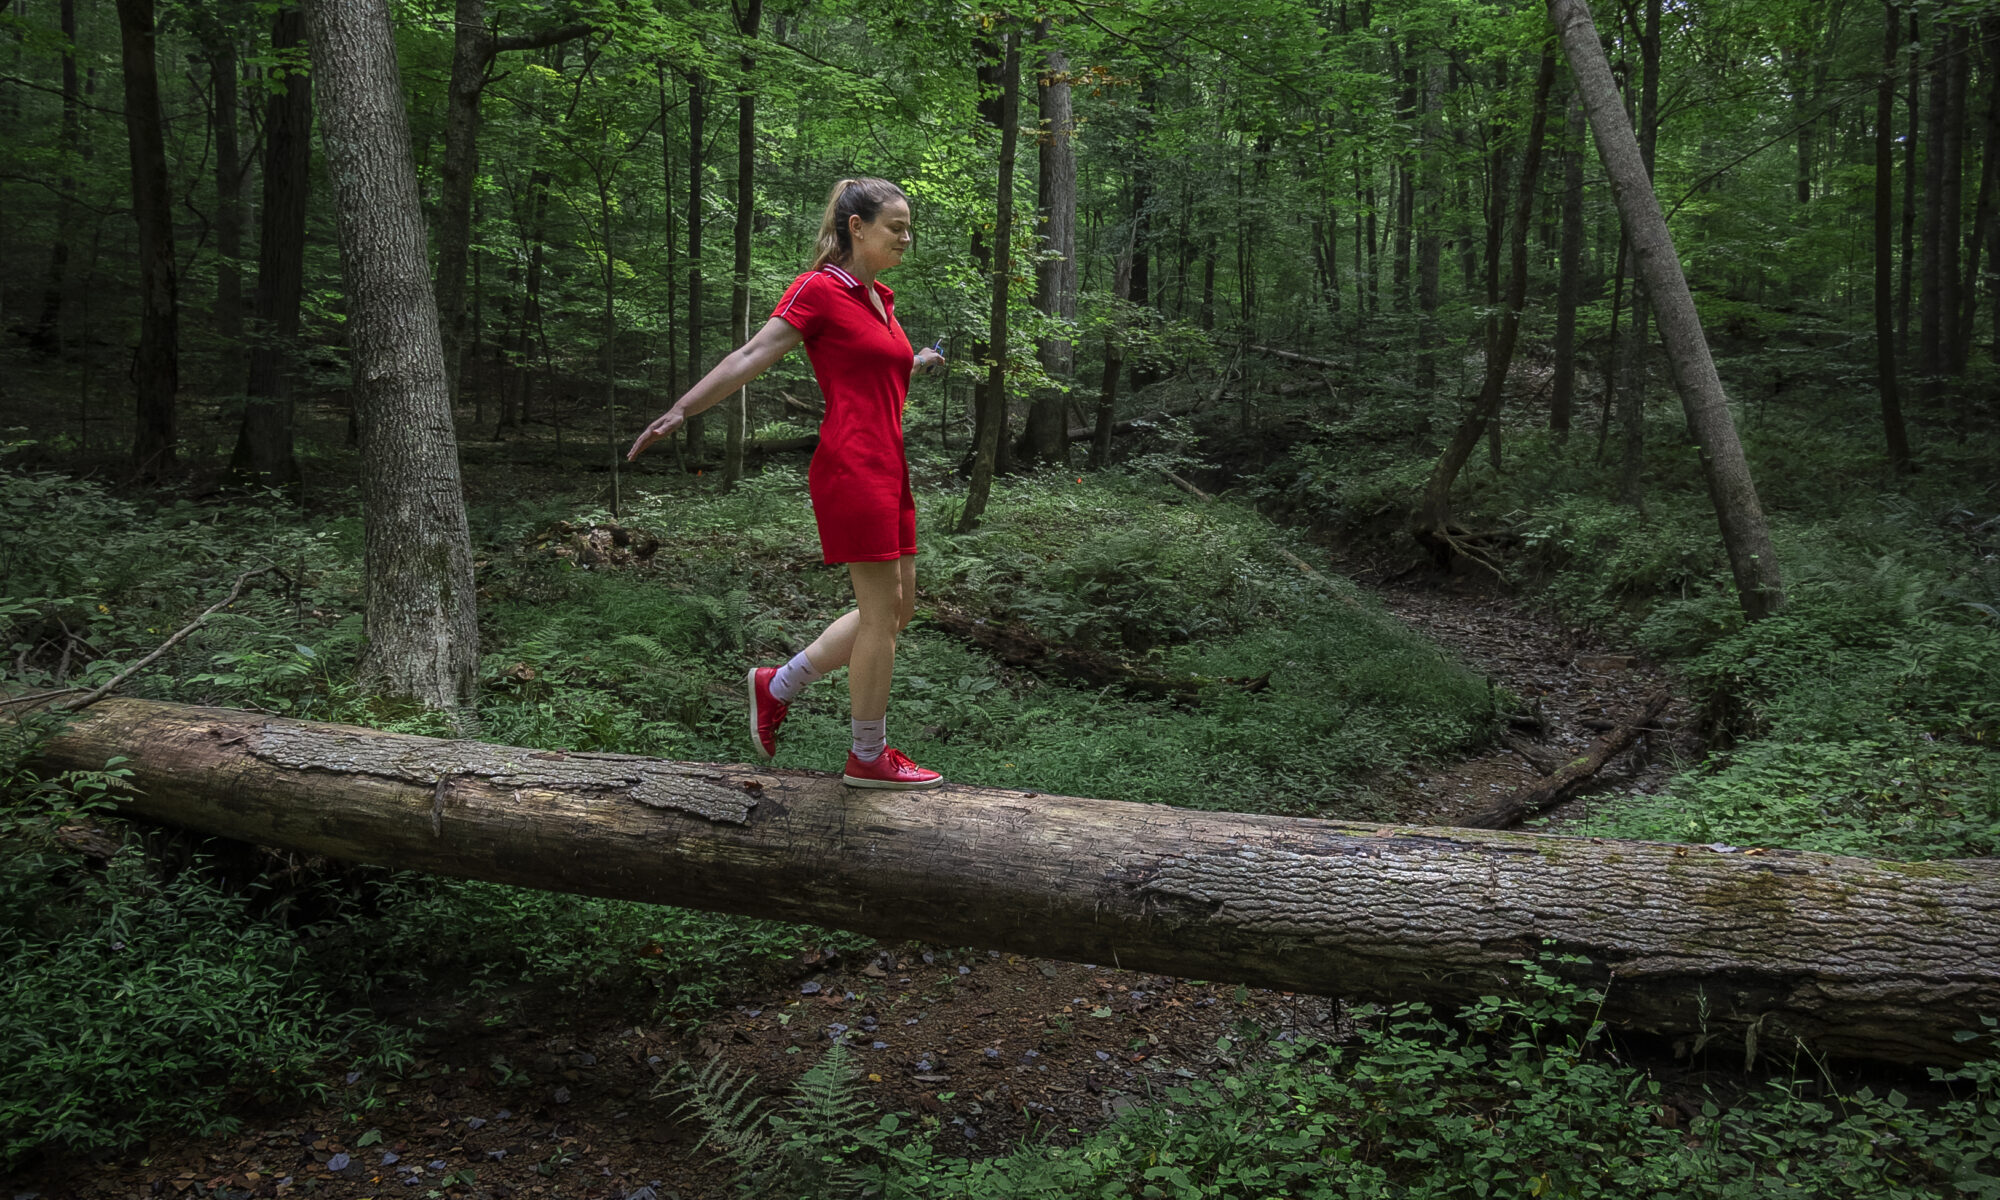 Woman in red dress walking across a fallen tree over a creek bed in the forest.